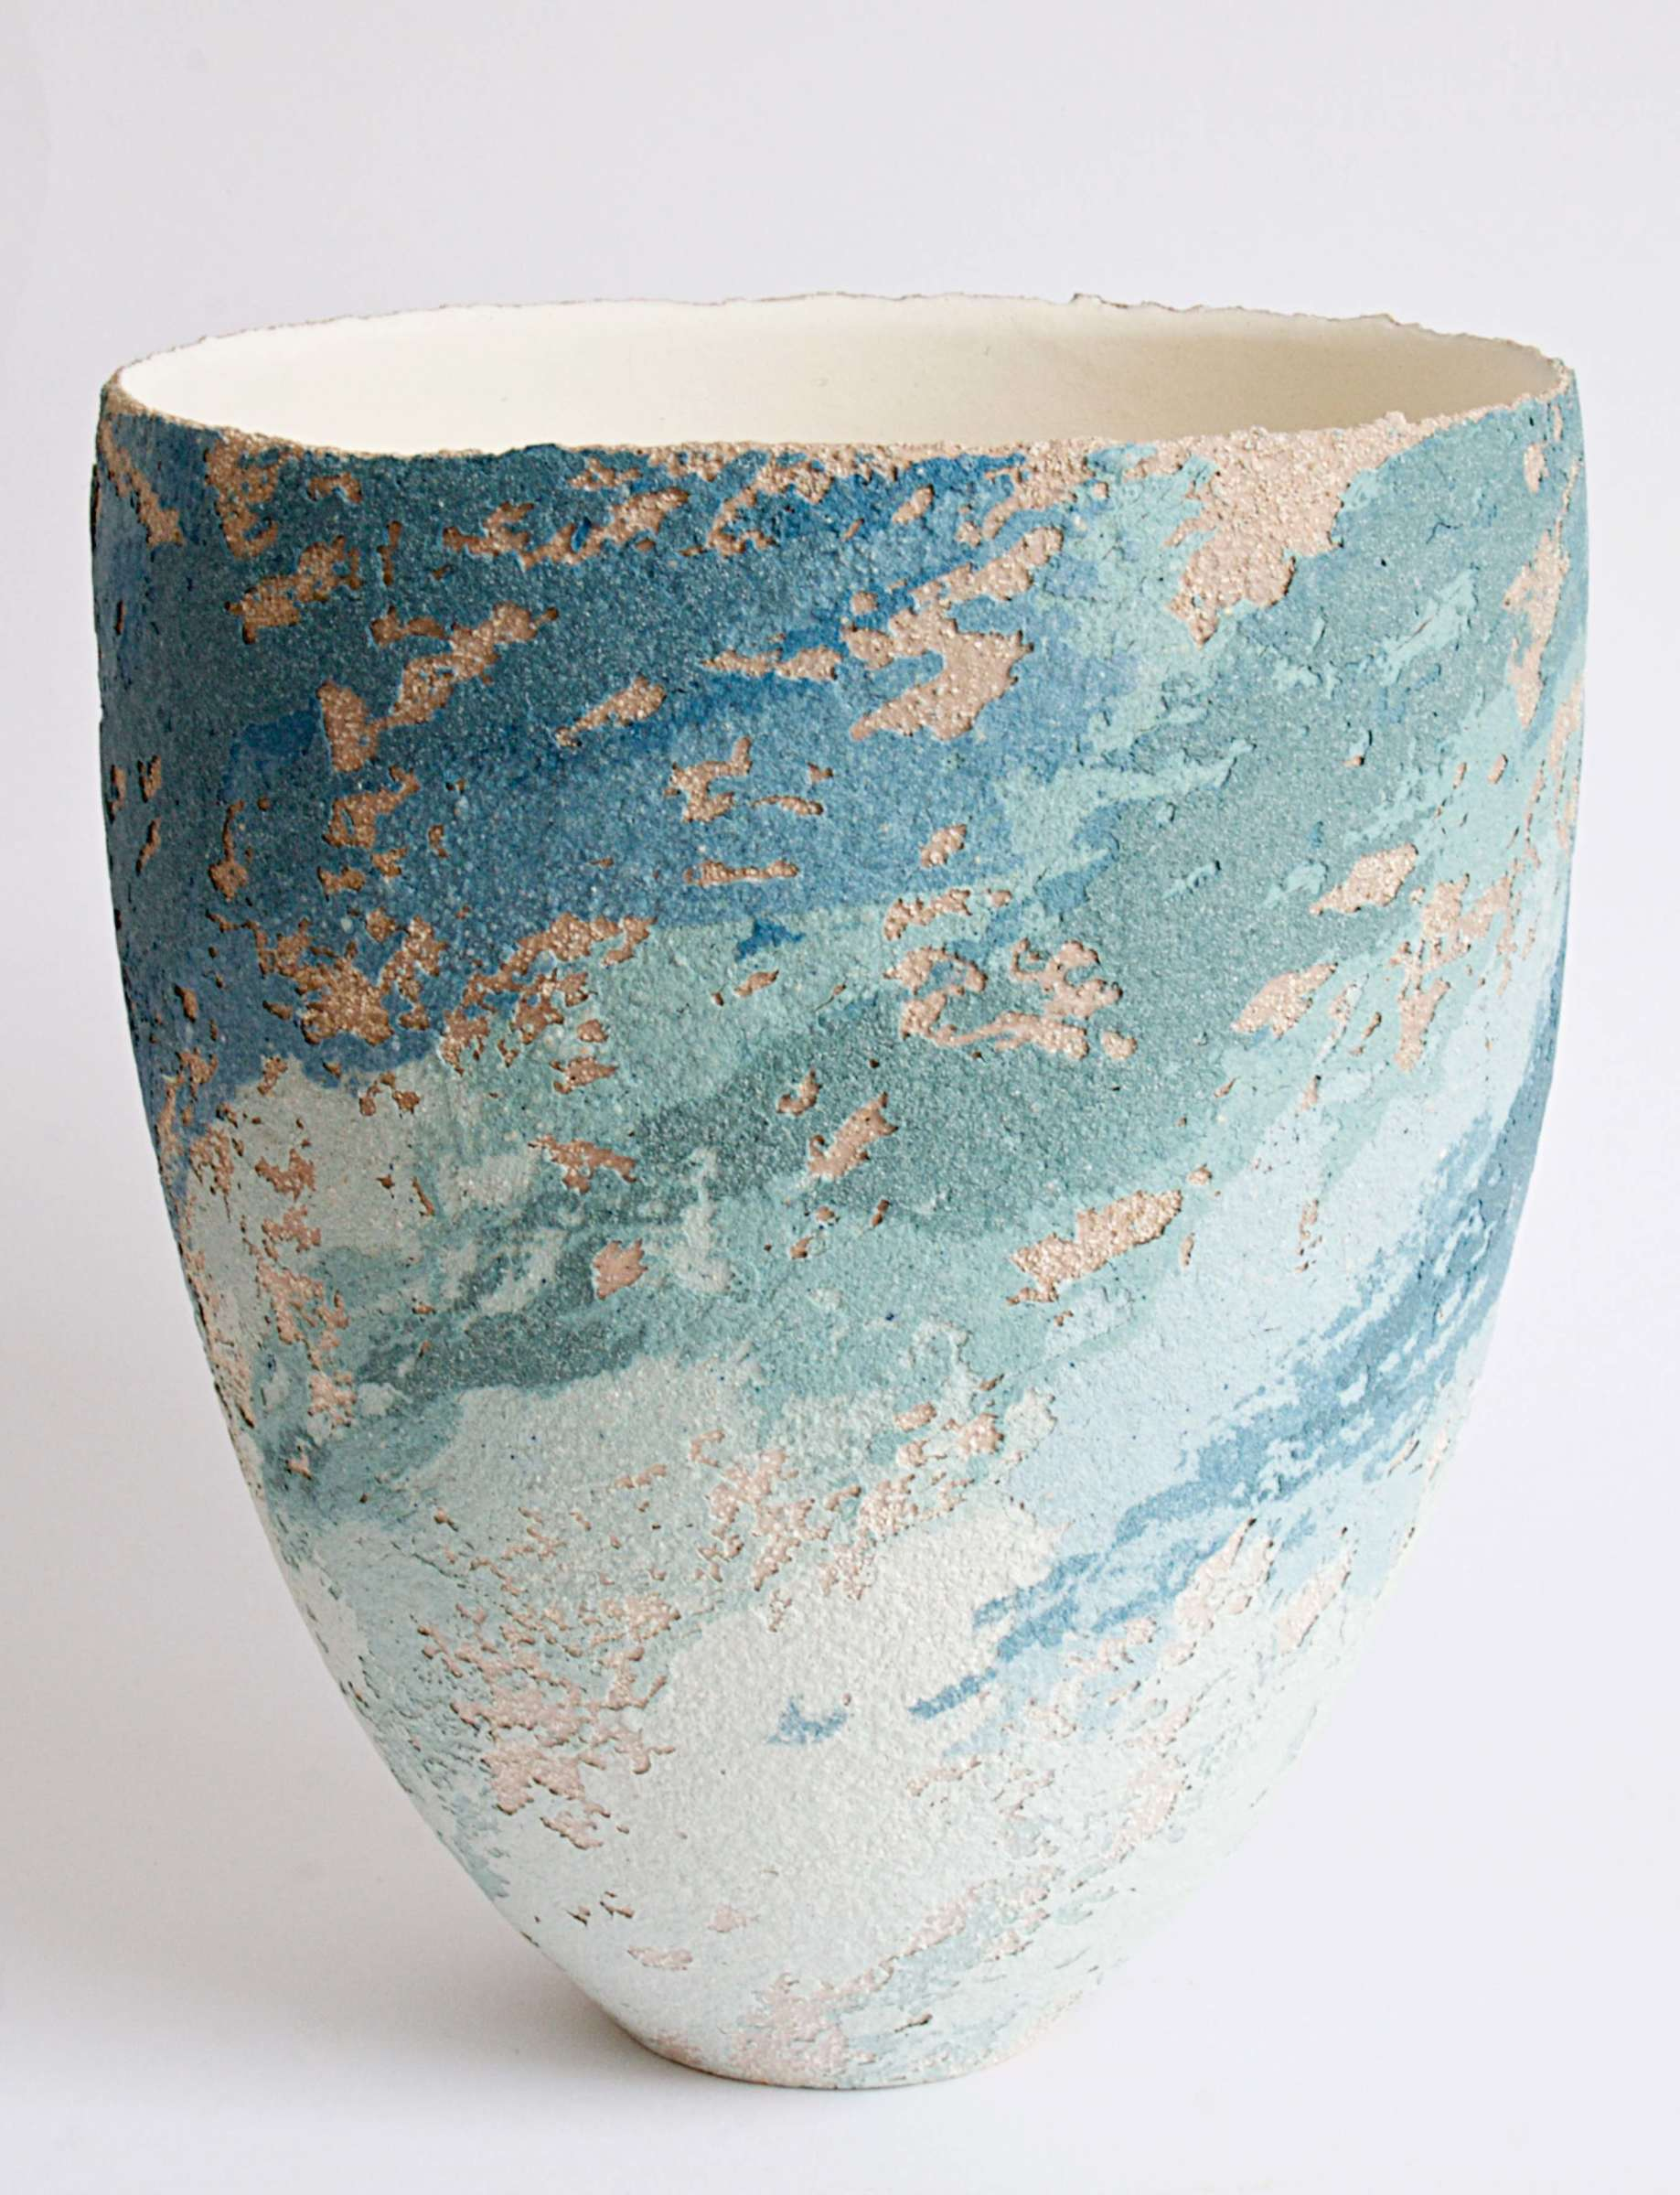 "<span class=""link fancybox-details-link""><a href=""/artists/79-clare-conrad/works/5396-clare-conrad-vessel-2018/"">View Detail Page</a></span><div class=""artist""><strong>Clare Conrad</strong></div> <div class=""title""><em>Vessel</em>, 2018</div> <div class=""medium"">wheel-thrown stoneware with vitreous slip & satin-matt glaze</div> <div class=""dimensions"">h. 21.5cm</div><div class=""copyright_line"">OwnArt: £ 30 x 10 Months, 0% APR</div>"